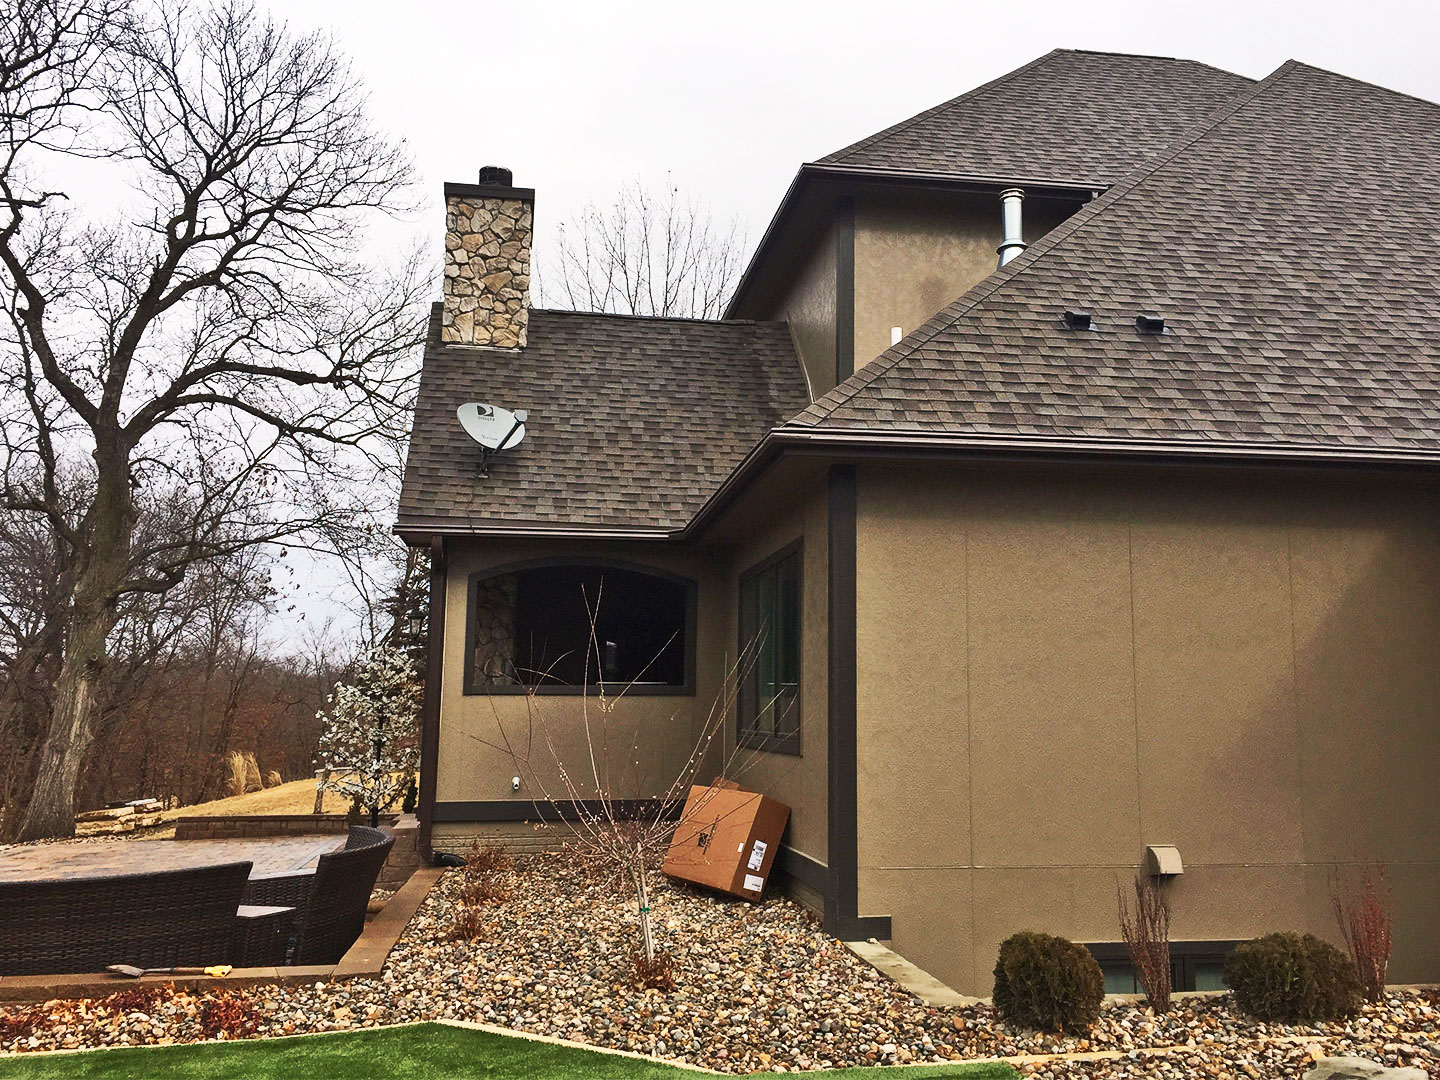 LeafGuard® carries an exclusive ScratchGuard® paint finish, that won't chip, peel or crack, and comes with a Limited Lifetime Warranty. ScratchGuard® will keep this Waukee, Iowa's homes gutters looking new and fresh.